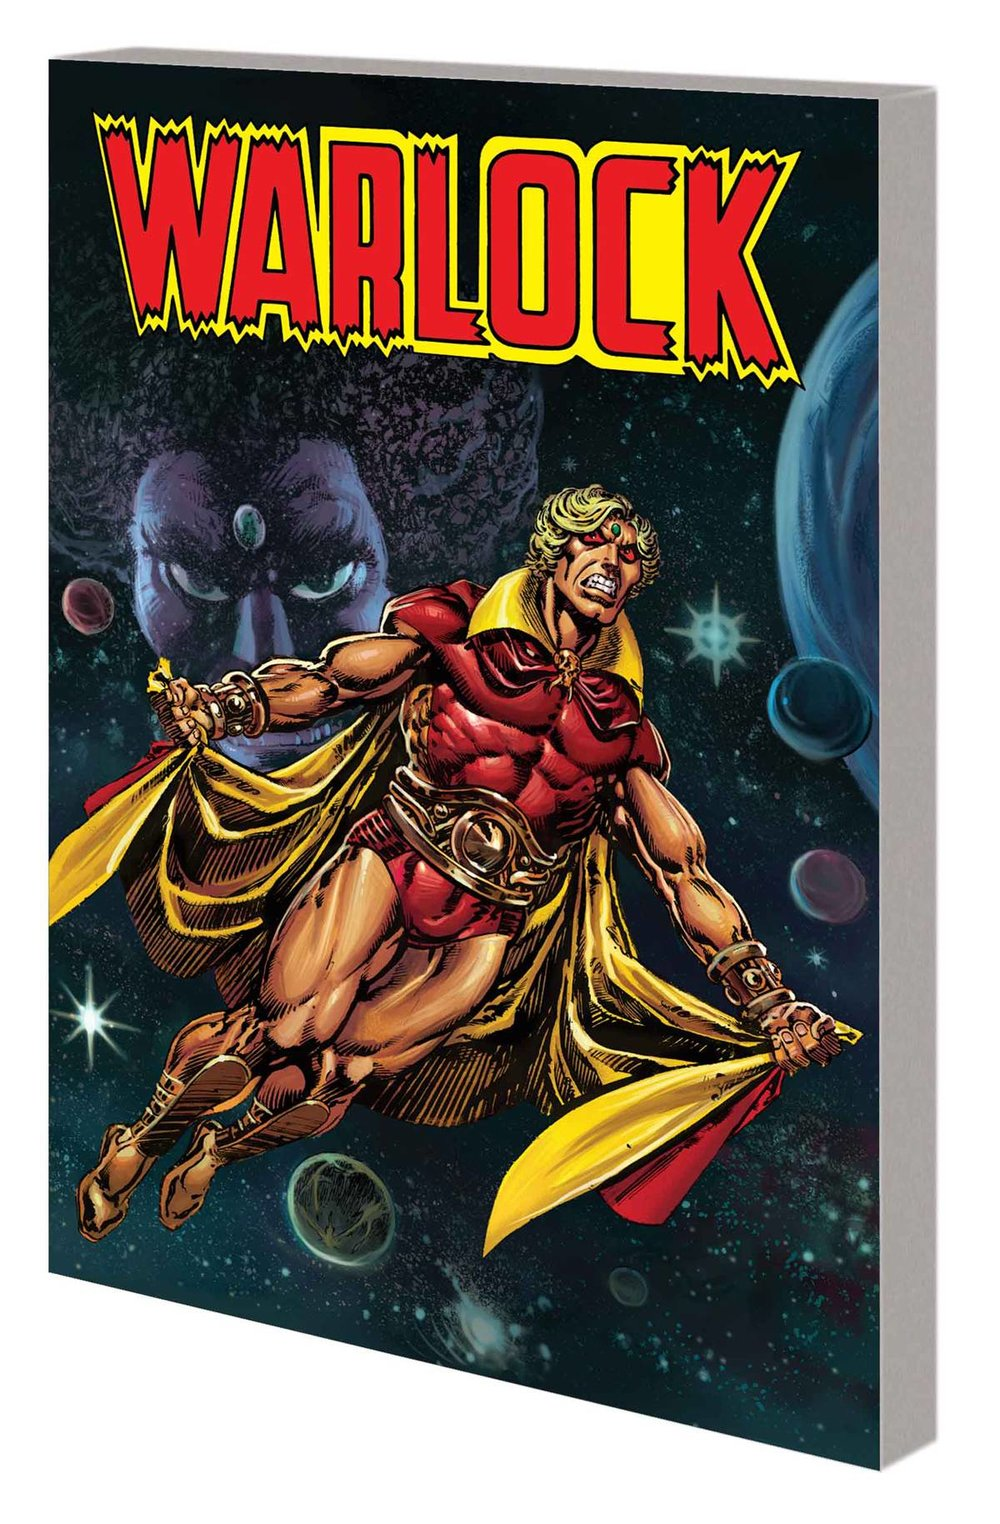 Warlock by Jim Starlin: The Complete Collection - Michael's PickHave you already read The Infinity Gauntlet?  Interested in reading some of the classic cosmic story lines that lead up to it?  The legendary Jim Starlin began planting seeds for what would eventually become the Infinity/Thanos story lines all the way back in the late '60s in his runs on Iron Man and Captain Marvel (available in The Life and Death of Captain Marvel collection).  In the '90s, prior to The Infinity Gauntlet miniseries, he returned Thanos to prominence in his run on The Silver Surfer (collected in part in Silver Surfer: Rebirth of Thanos).  However, my favorite of Starlin's cosmic stories has to be his Adam Warlock run, collected in Warlock by Jim Starlin: The Complete Collection.  Angsty, introspective, psychedelic, and action packed, Warlock is the '70s equivalent of a Grant Morrison superhero comic.  Featuring plenty of Thanos, it also has the first appearances of Pip the Troll and Gamora.  The now classic two-parter that completes the volume has the Avengers, Captain Marvel, Spidey, and the Thing.  Ambitious in its heady scope and absolutely beautiful to look at, Warlock by Jim Starlin: The Complete Collection delivers a sizable and satisfying slice of pre-Infinity Gauntley sci-fi.  Marvel has been mining Starlin's stories for the movies and yet Starlin remains under appreciated by today's comic fans.  Let's rectify that.  Check out Warlock, you won't be disappointed.